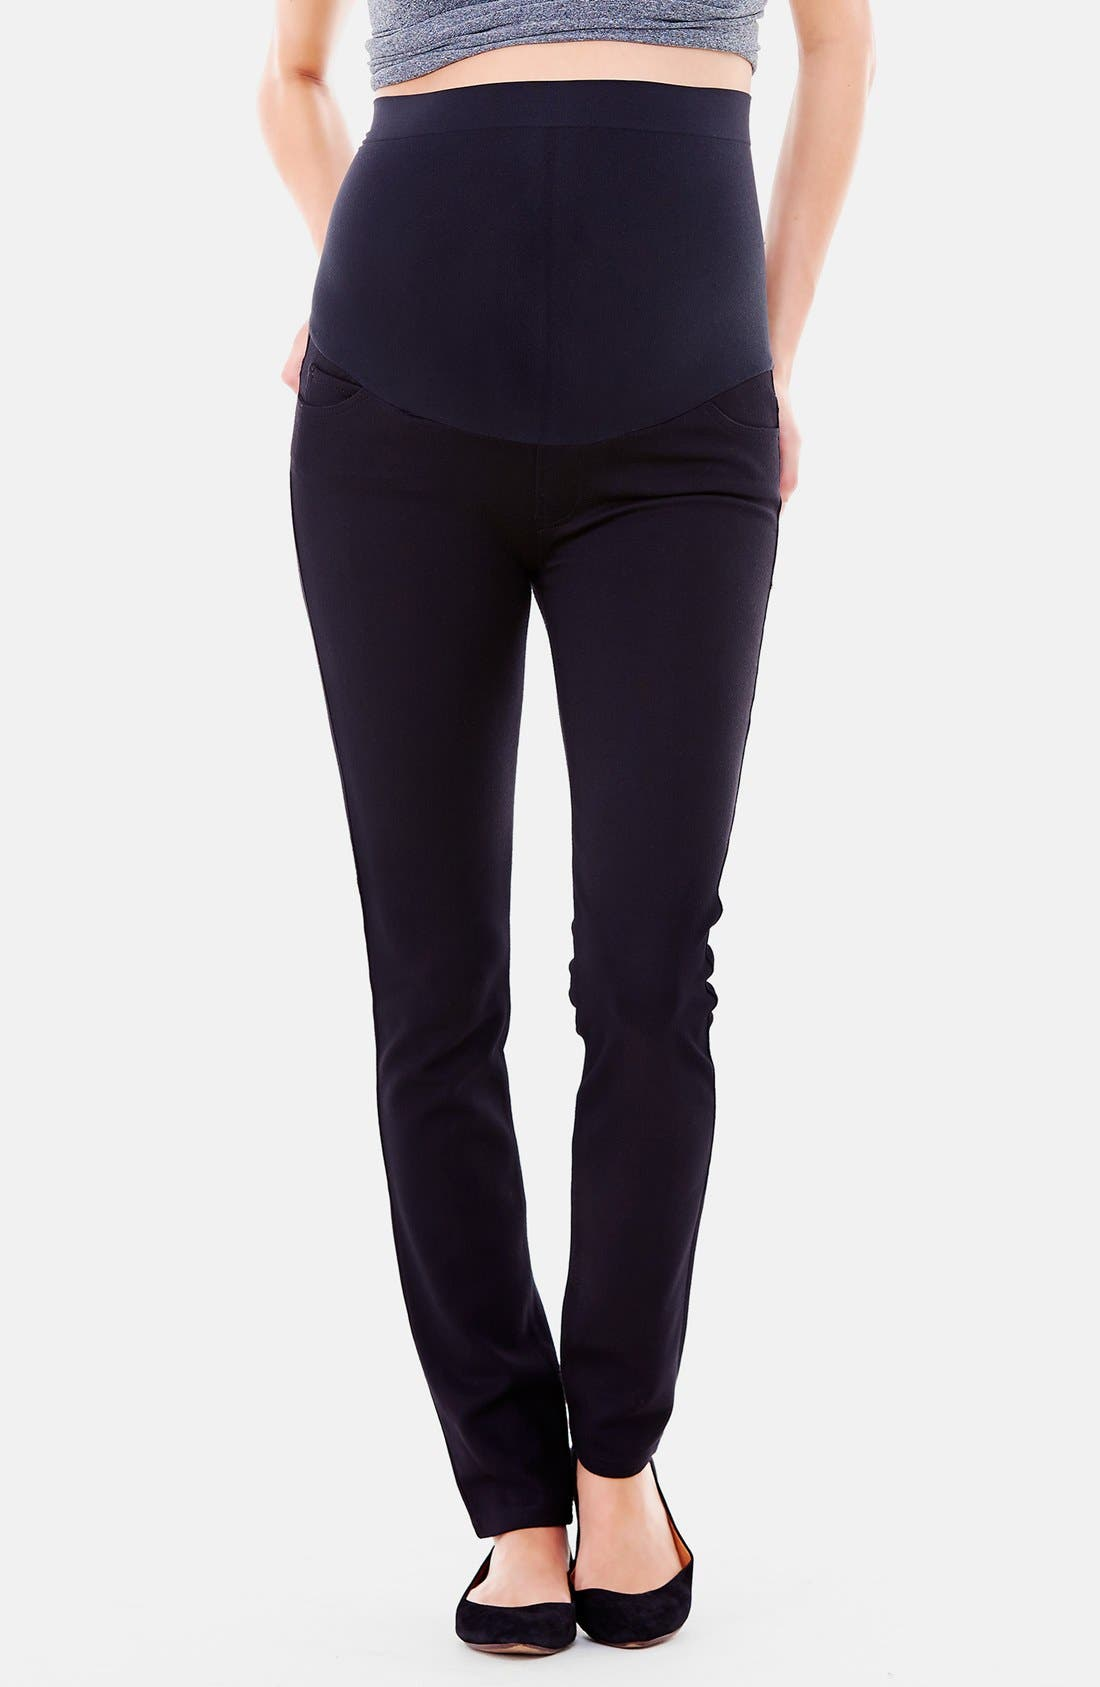 Ingrid & Isabel® Ponte Knit Skinny Maternity Pants